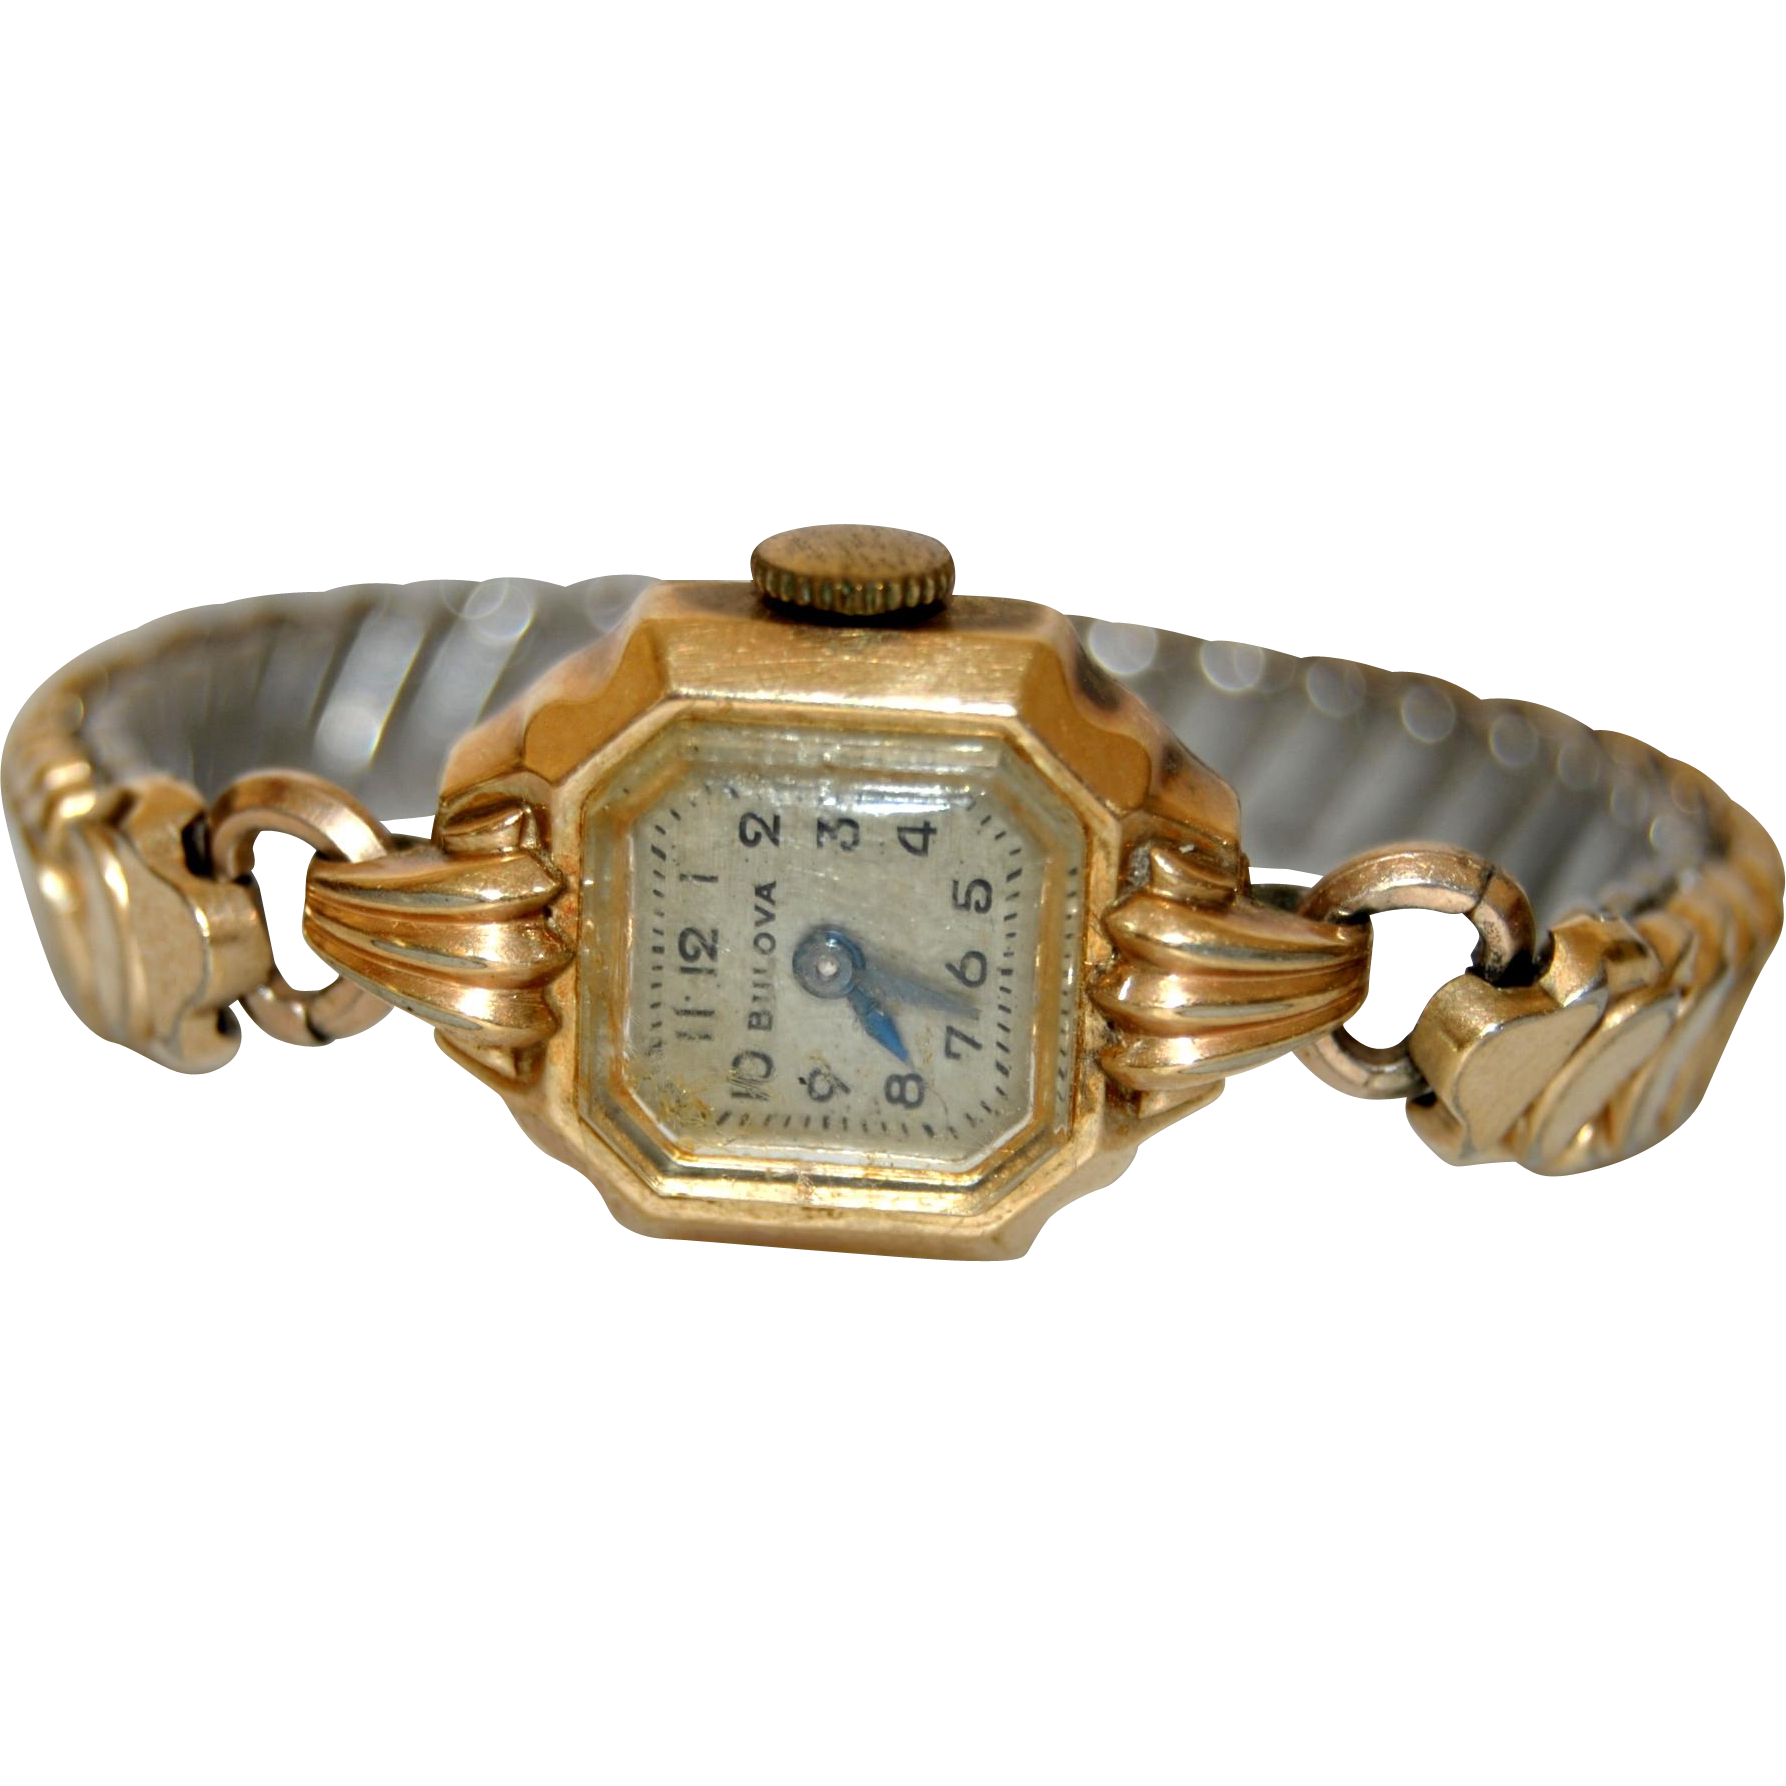 Vintage Bulova Watch 10k Gold Filled 1960s Ladies Bracelet Cocktail Wristwatch Vintage Bulova Watches Womens Bracelets Bulova Watches